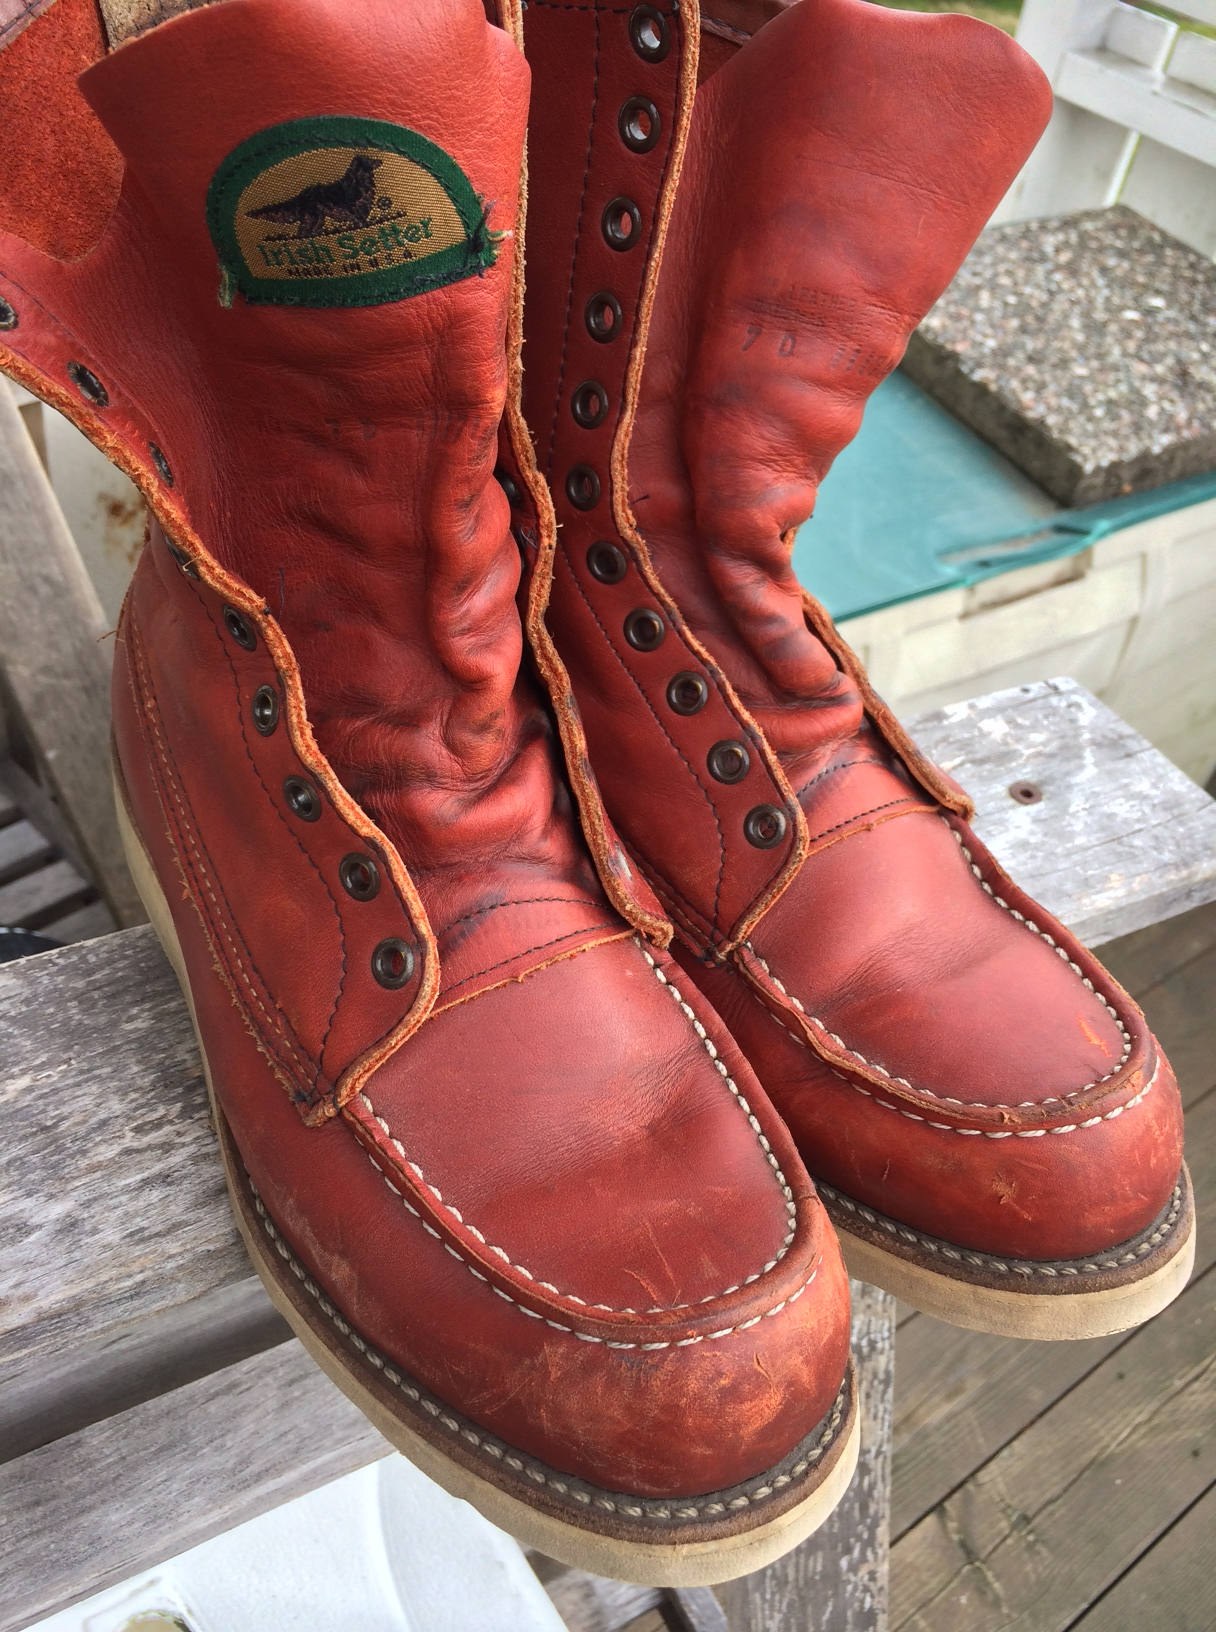 Iconic Footwear: The Red Wing 877 Irish Setters – Well Dressed Dad